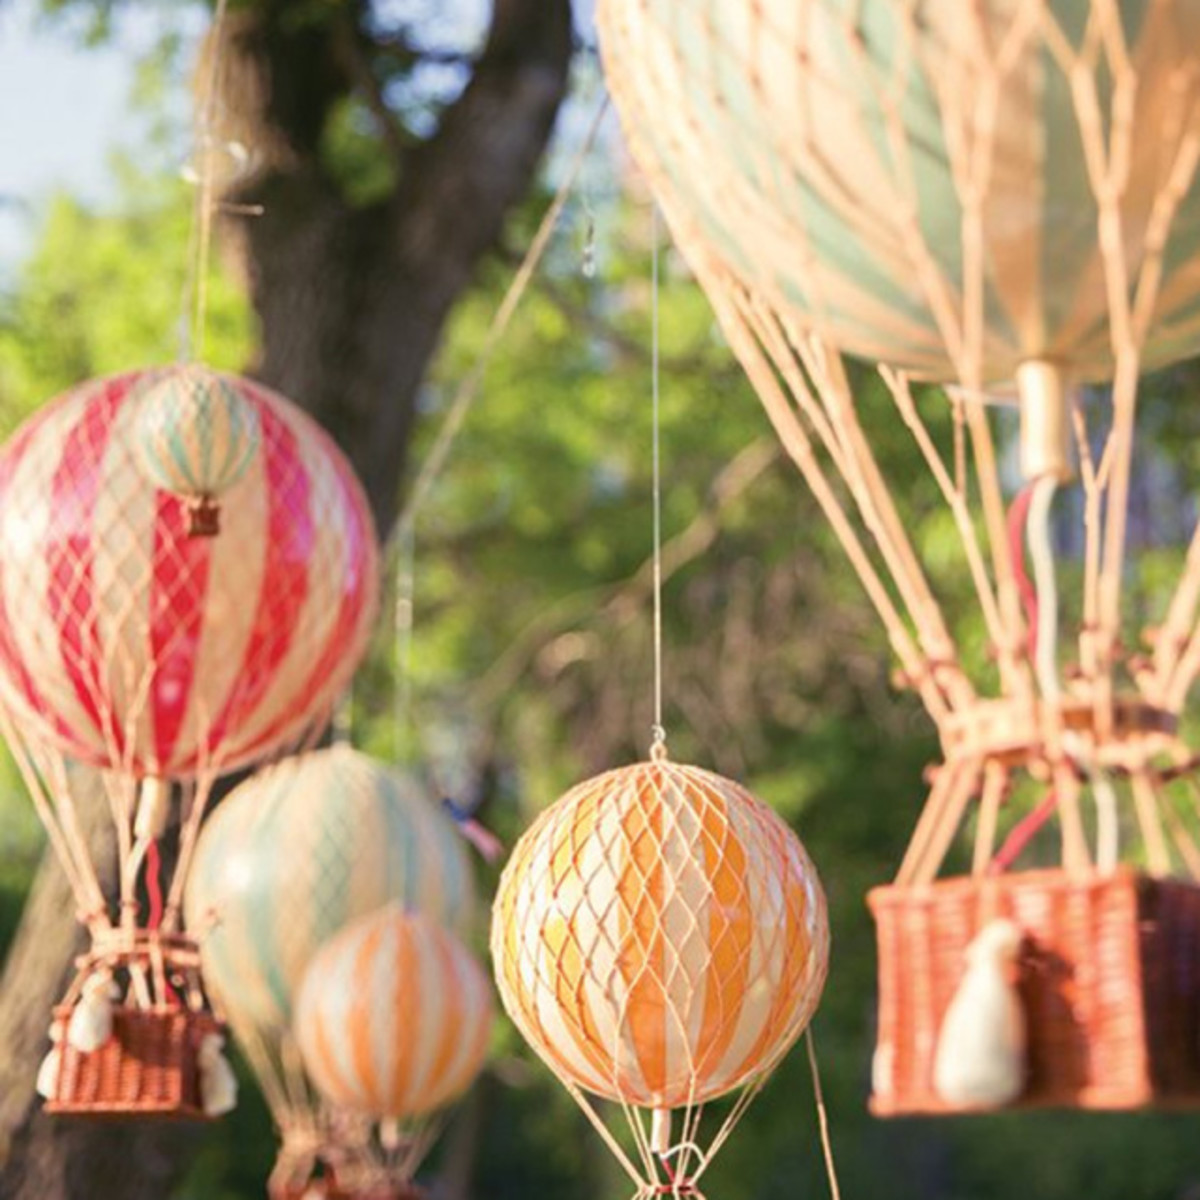 Hang the balloons inside or out for a fabulous party theme!